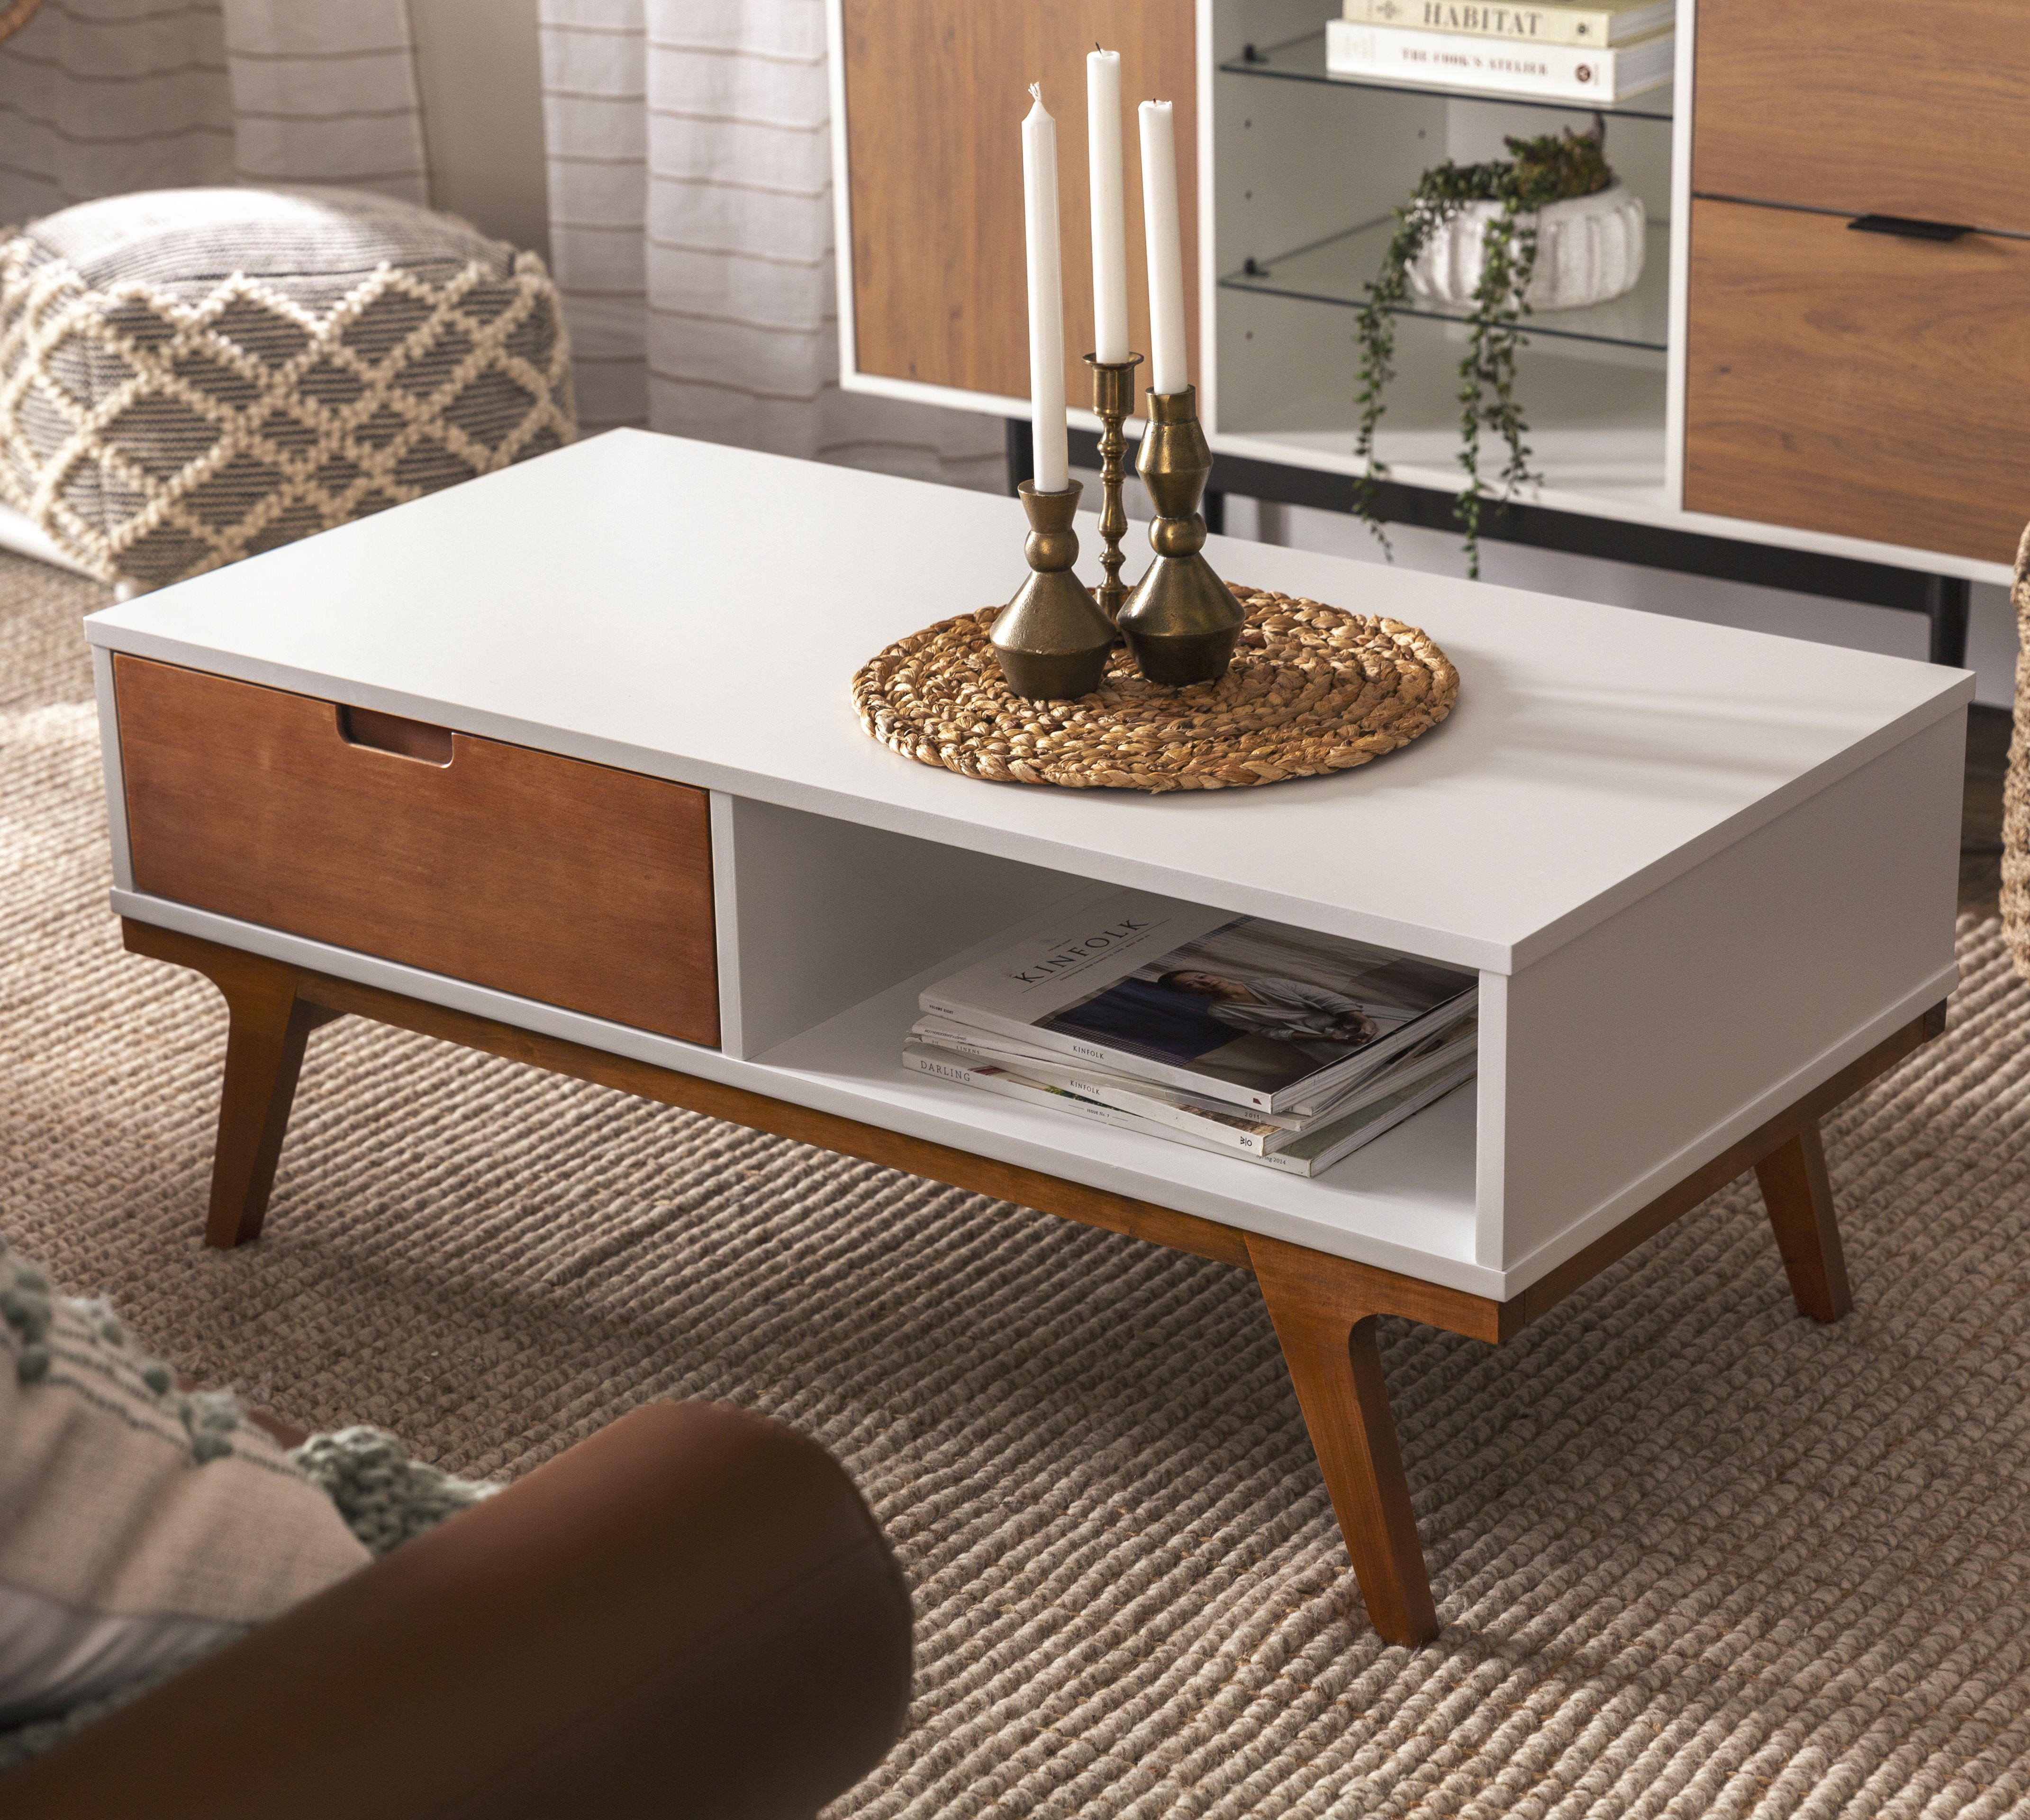 Mateo Coffee Table Coffee Table Living Room Coffee Table Books Coffee Table Living Room Modern [ 3840 x 4284 Pixel ]